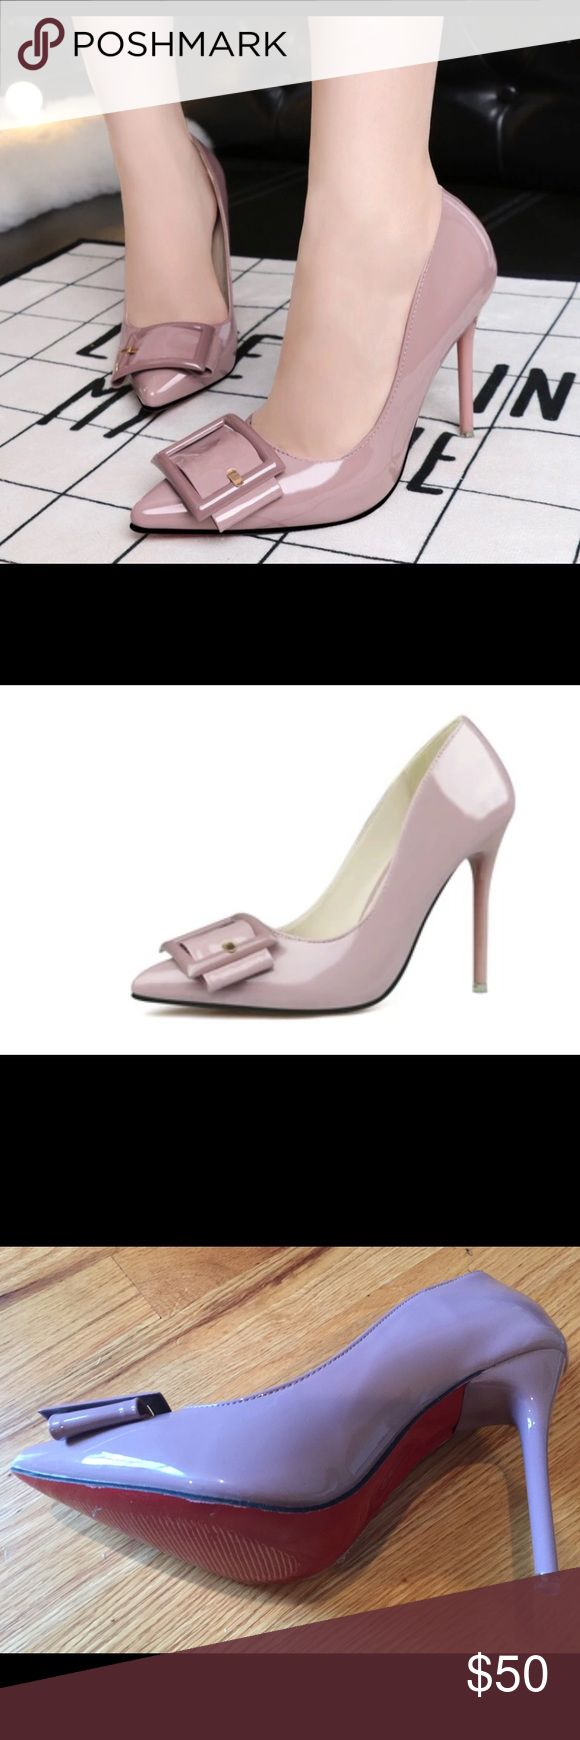 """Mauve Pale Lavender Patent Buckle High Heels-NEW Gorgeous patent mauve heels with red soles. (Soles have protective plastic on them.) From a boutique in NYC, new in box. Popular current style. 4"""" Heel, European size 39, which for this pump best fits an 8. The width is M. These are gorgeous, bought them for me, but I'm a true 8.5, and high heels like this can't be too small Shoes Heels"""